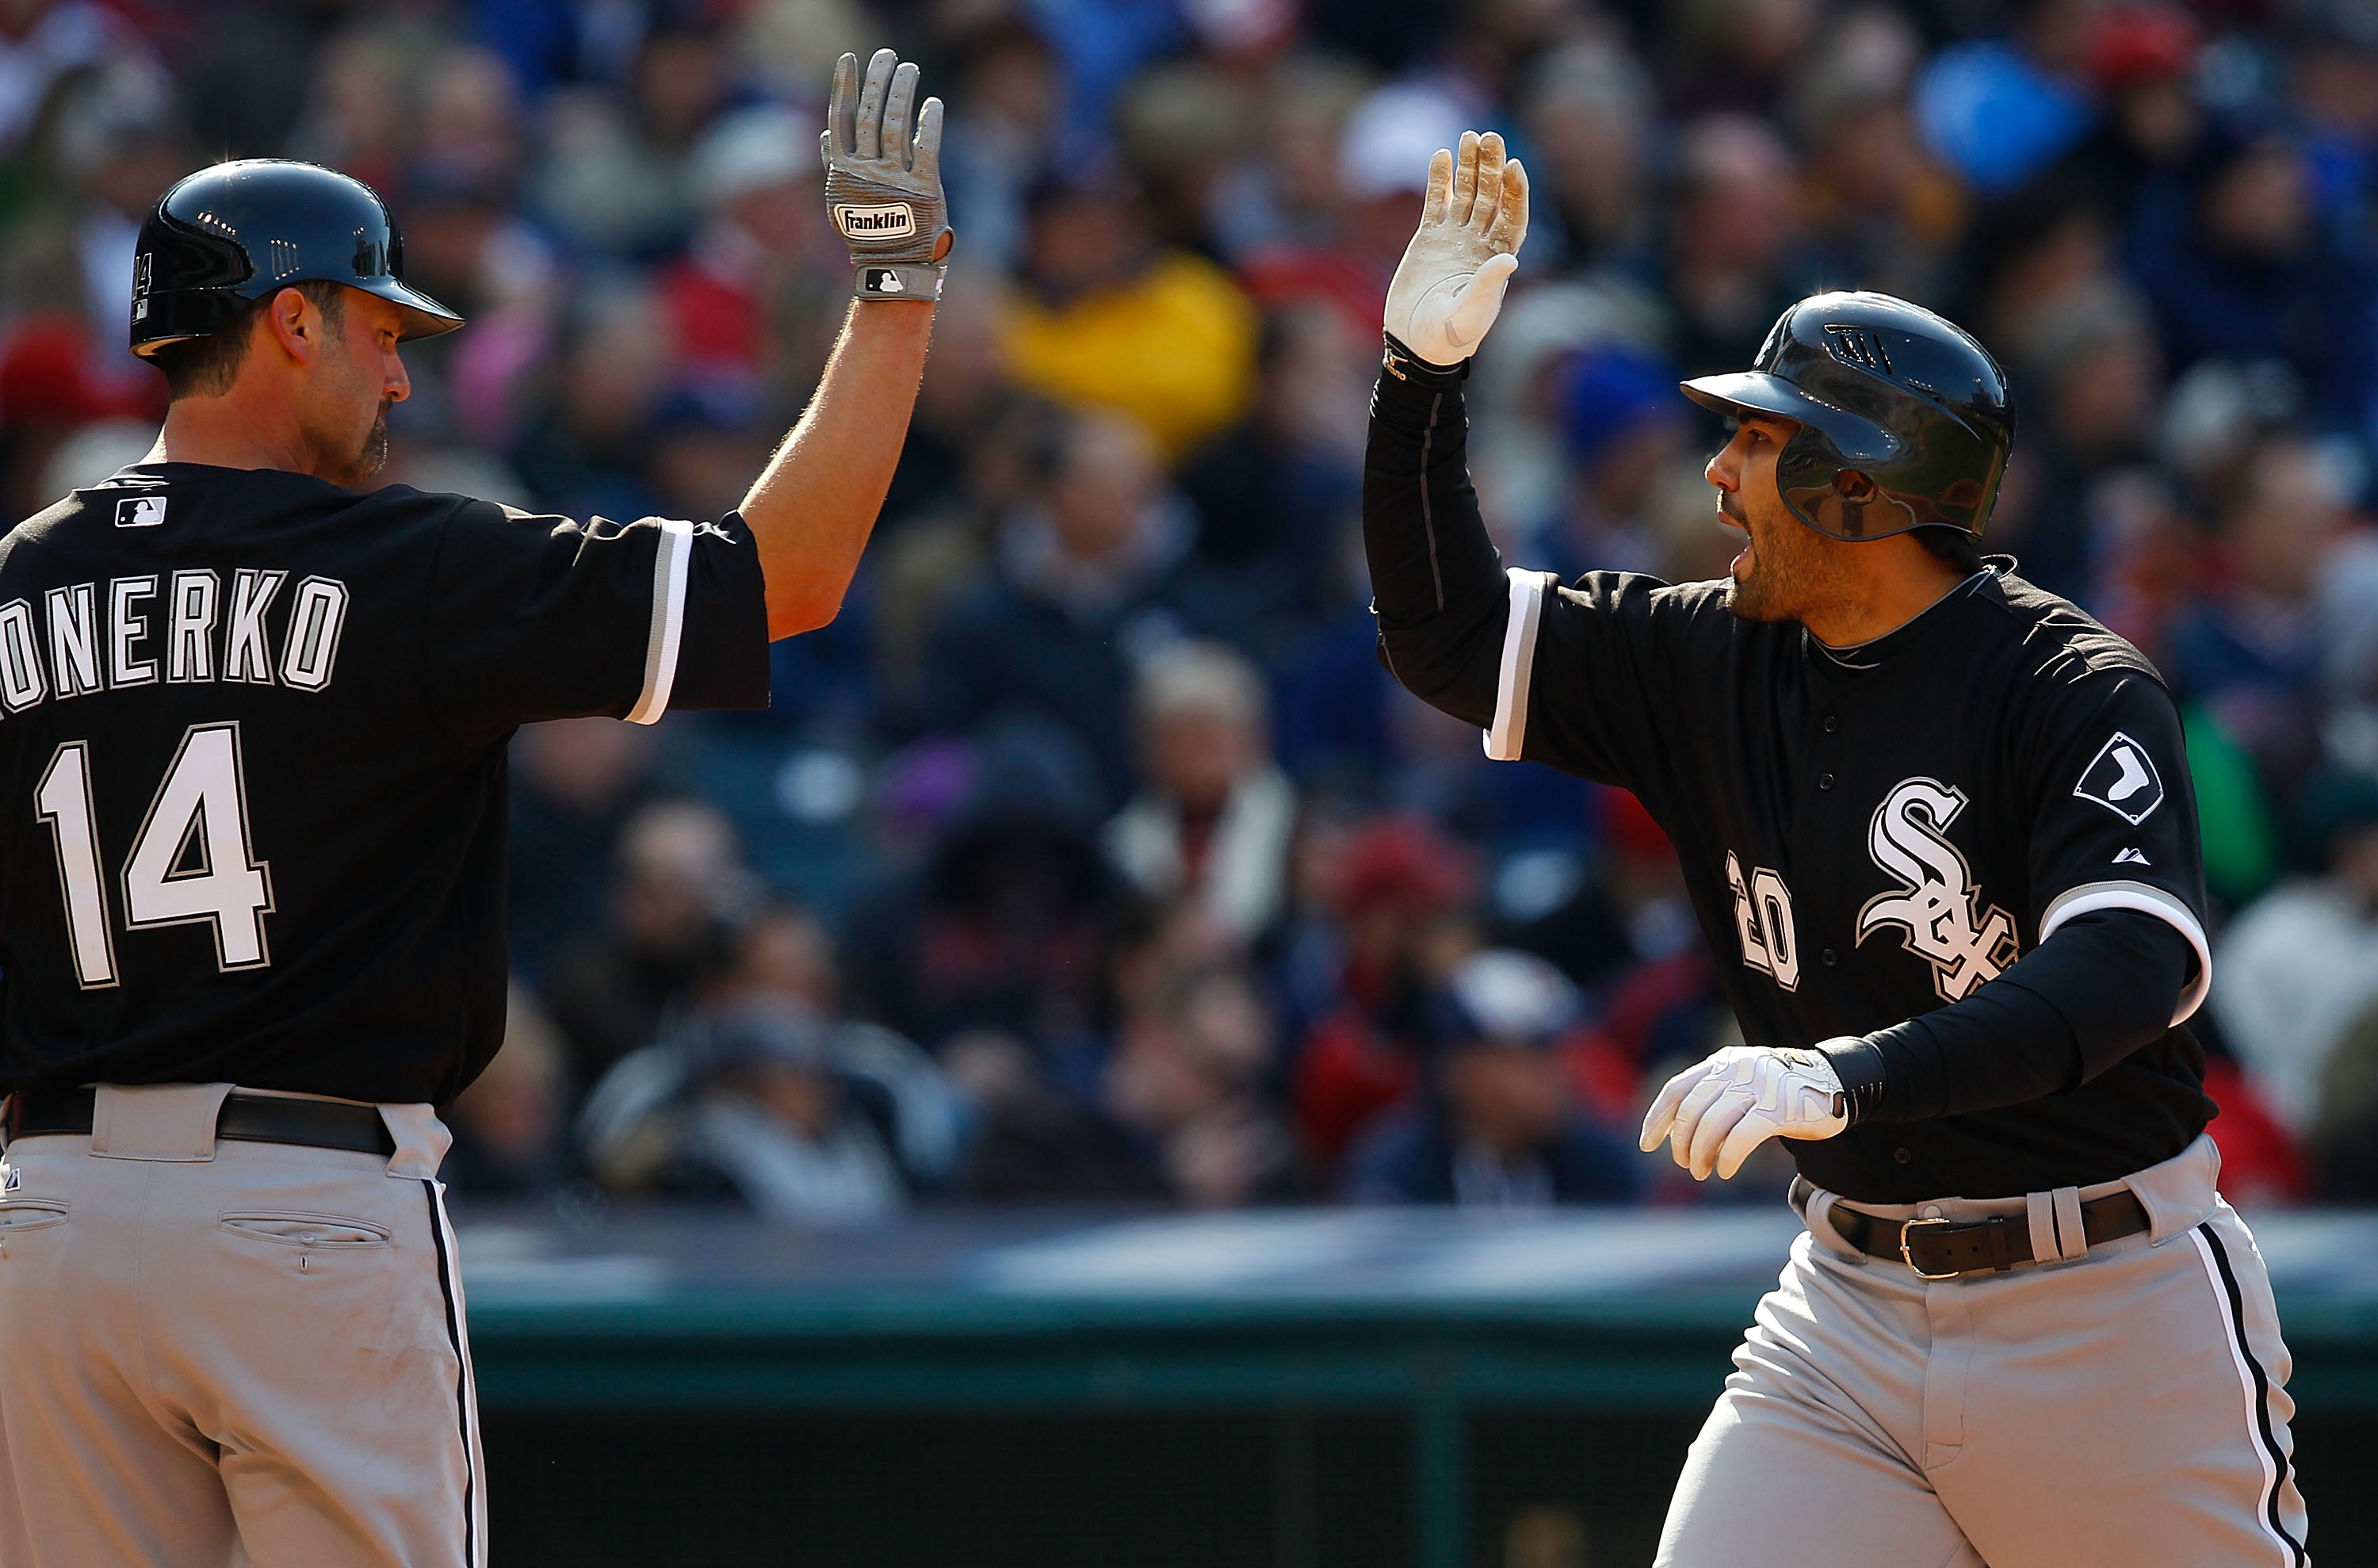 CLEVELAND - APRIL 01:  Carlos Quentin #20 celebrates with teammate aul Konerko #14 of the Chicago White Sox after hitting a two-run home run during the Opening Day game against the Cleveland Indians on April 1, 2011 at Progressive Field in Cleveland, Ohio